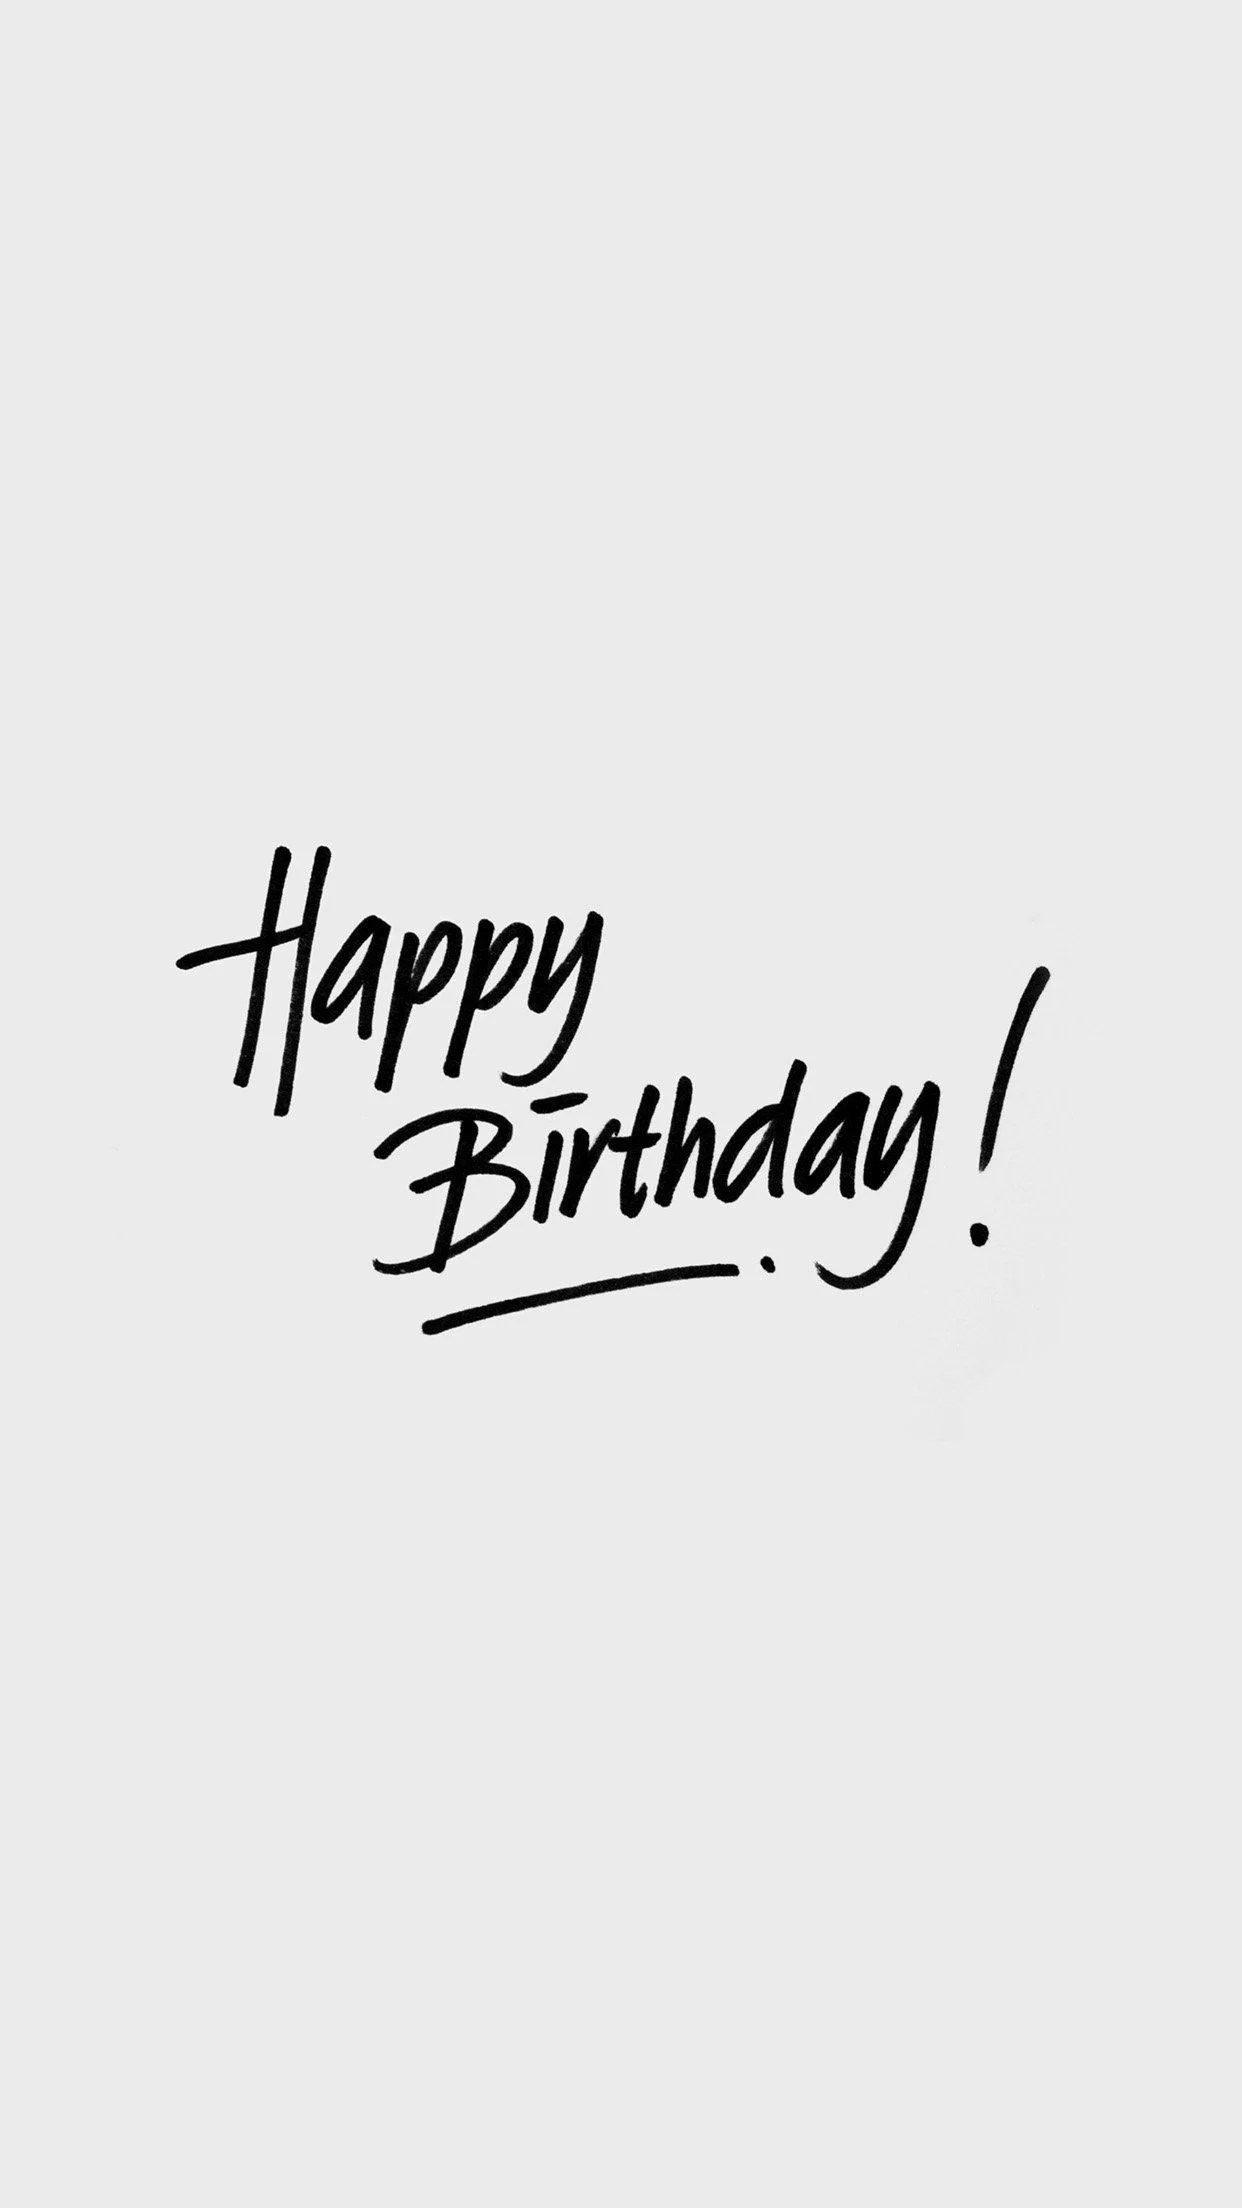 Birthday Iphone Wallpapers Top Free Birthday Iphone Backgrounds Wallpaperaccess